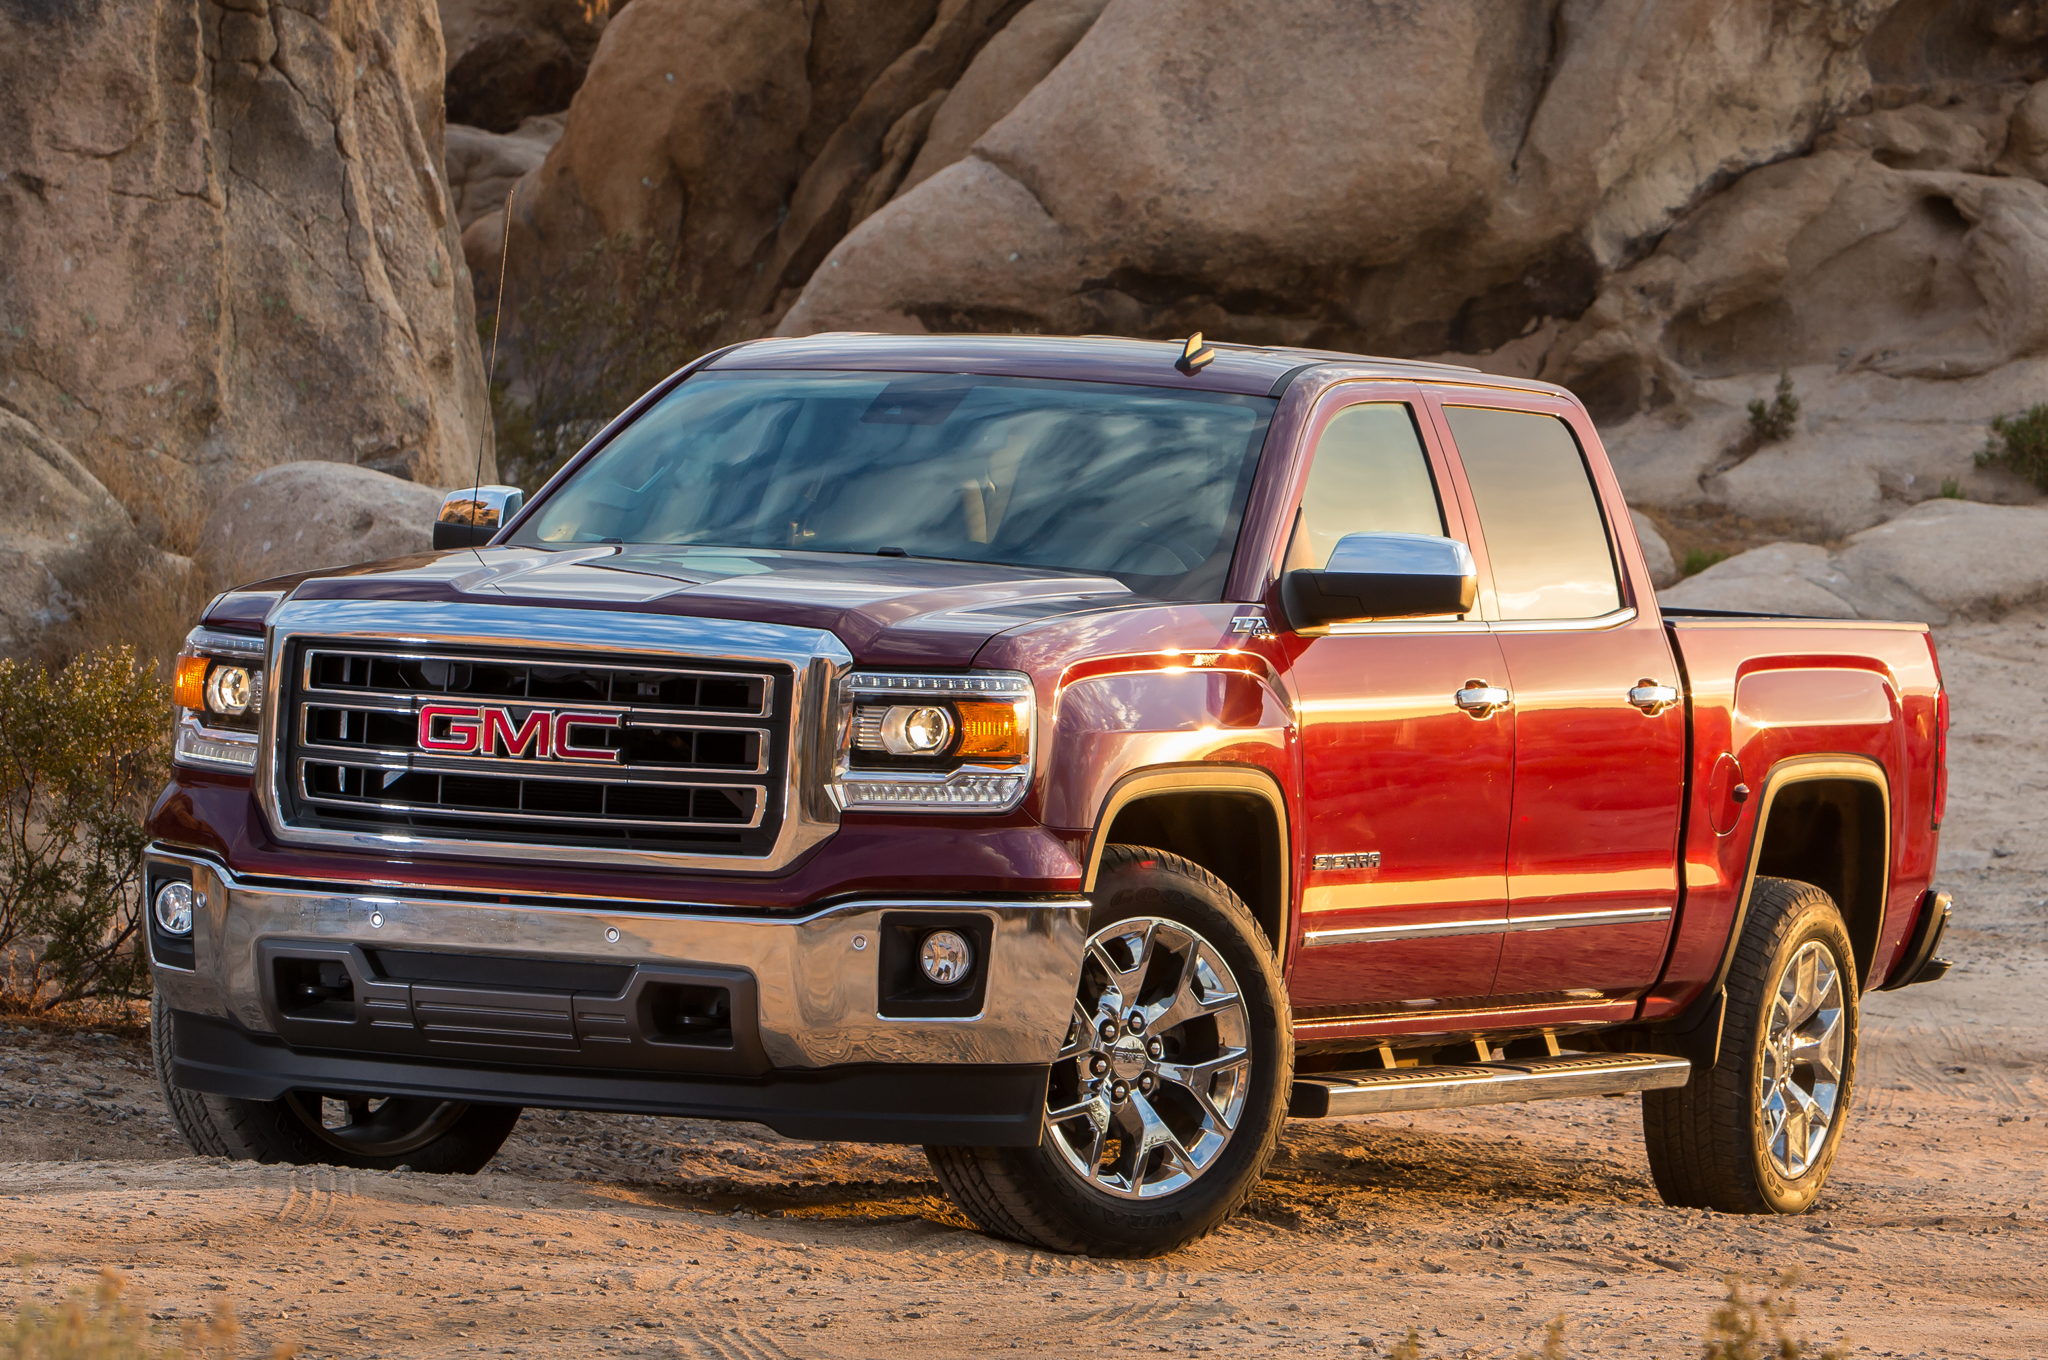 testing gmc news components spied spy sierra with powertrain diesel shots